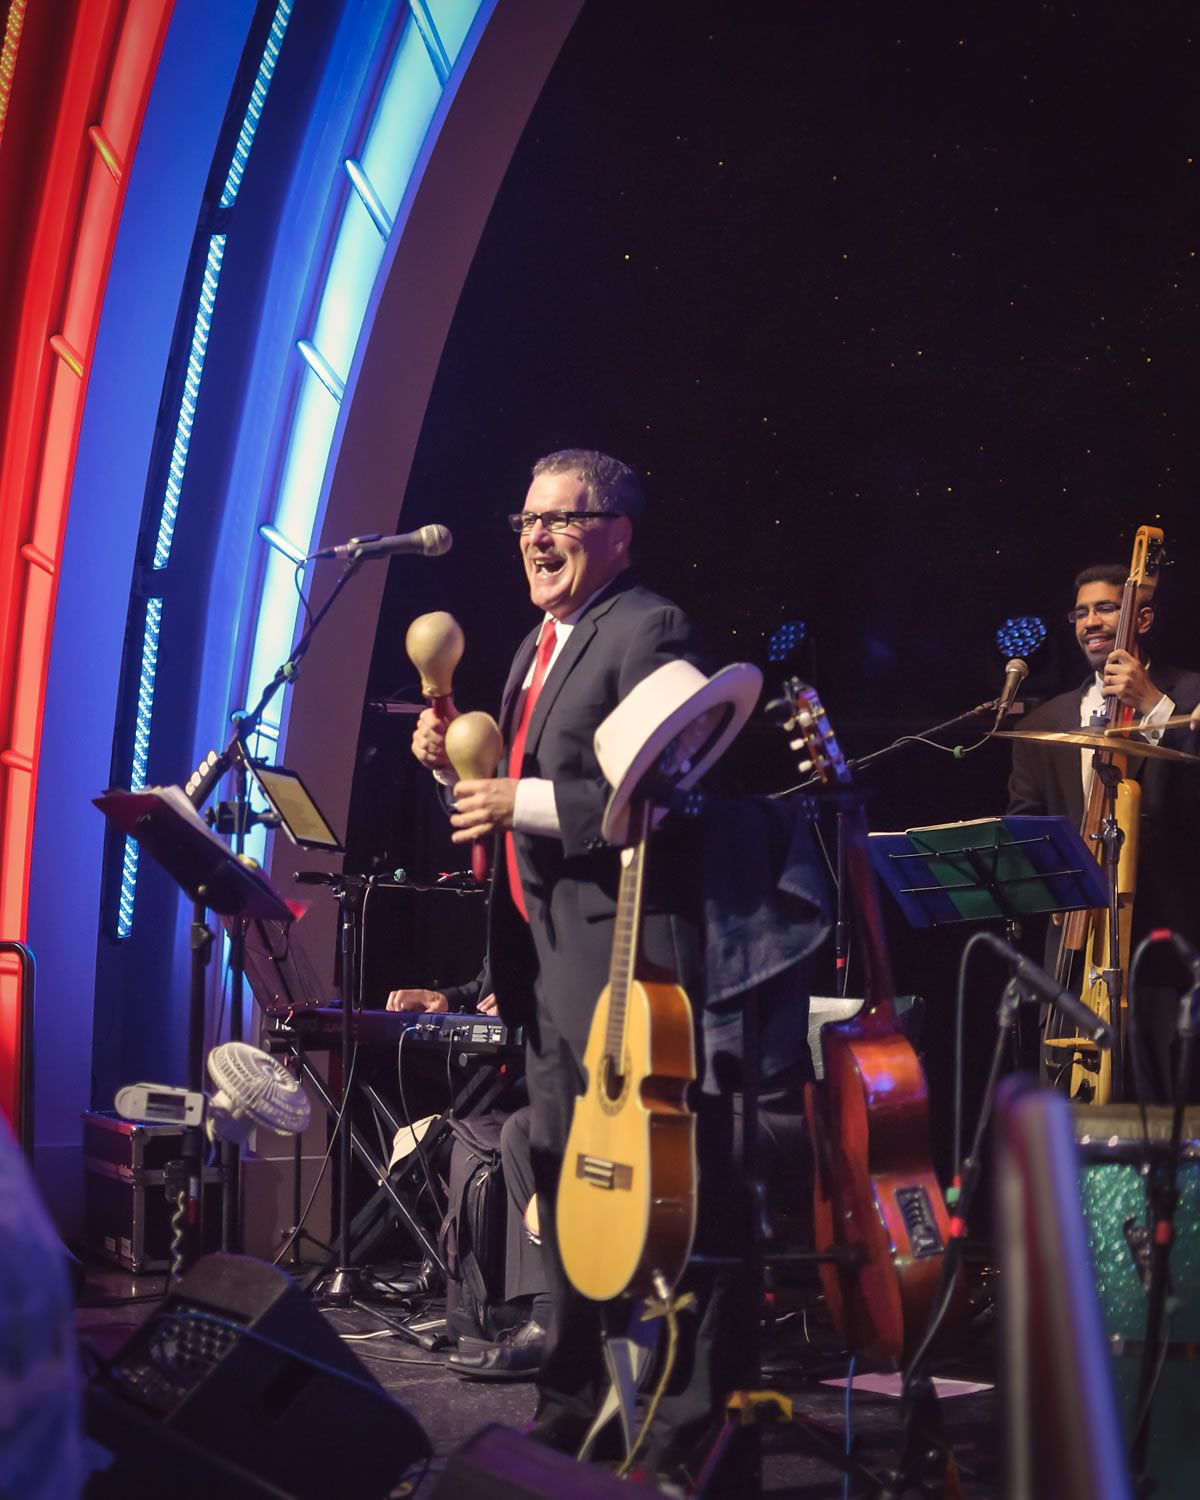 JuanMa-playing-maracas-smiling-bass-player-background-Empire-City-Yonkers-Raceway-Casino-concert